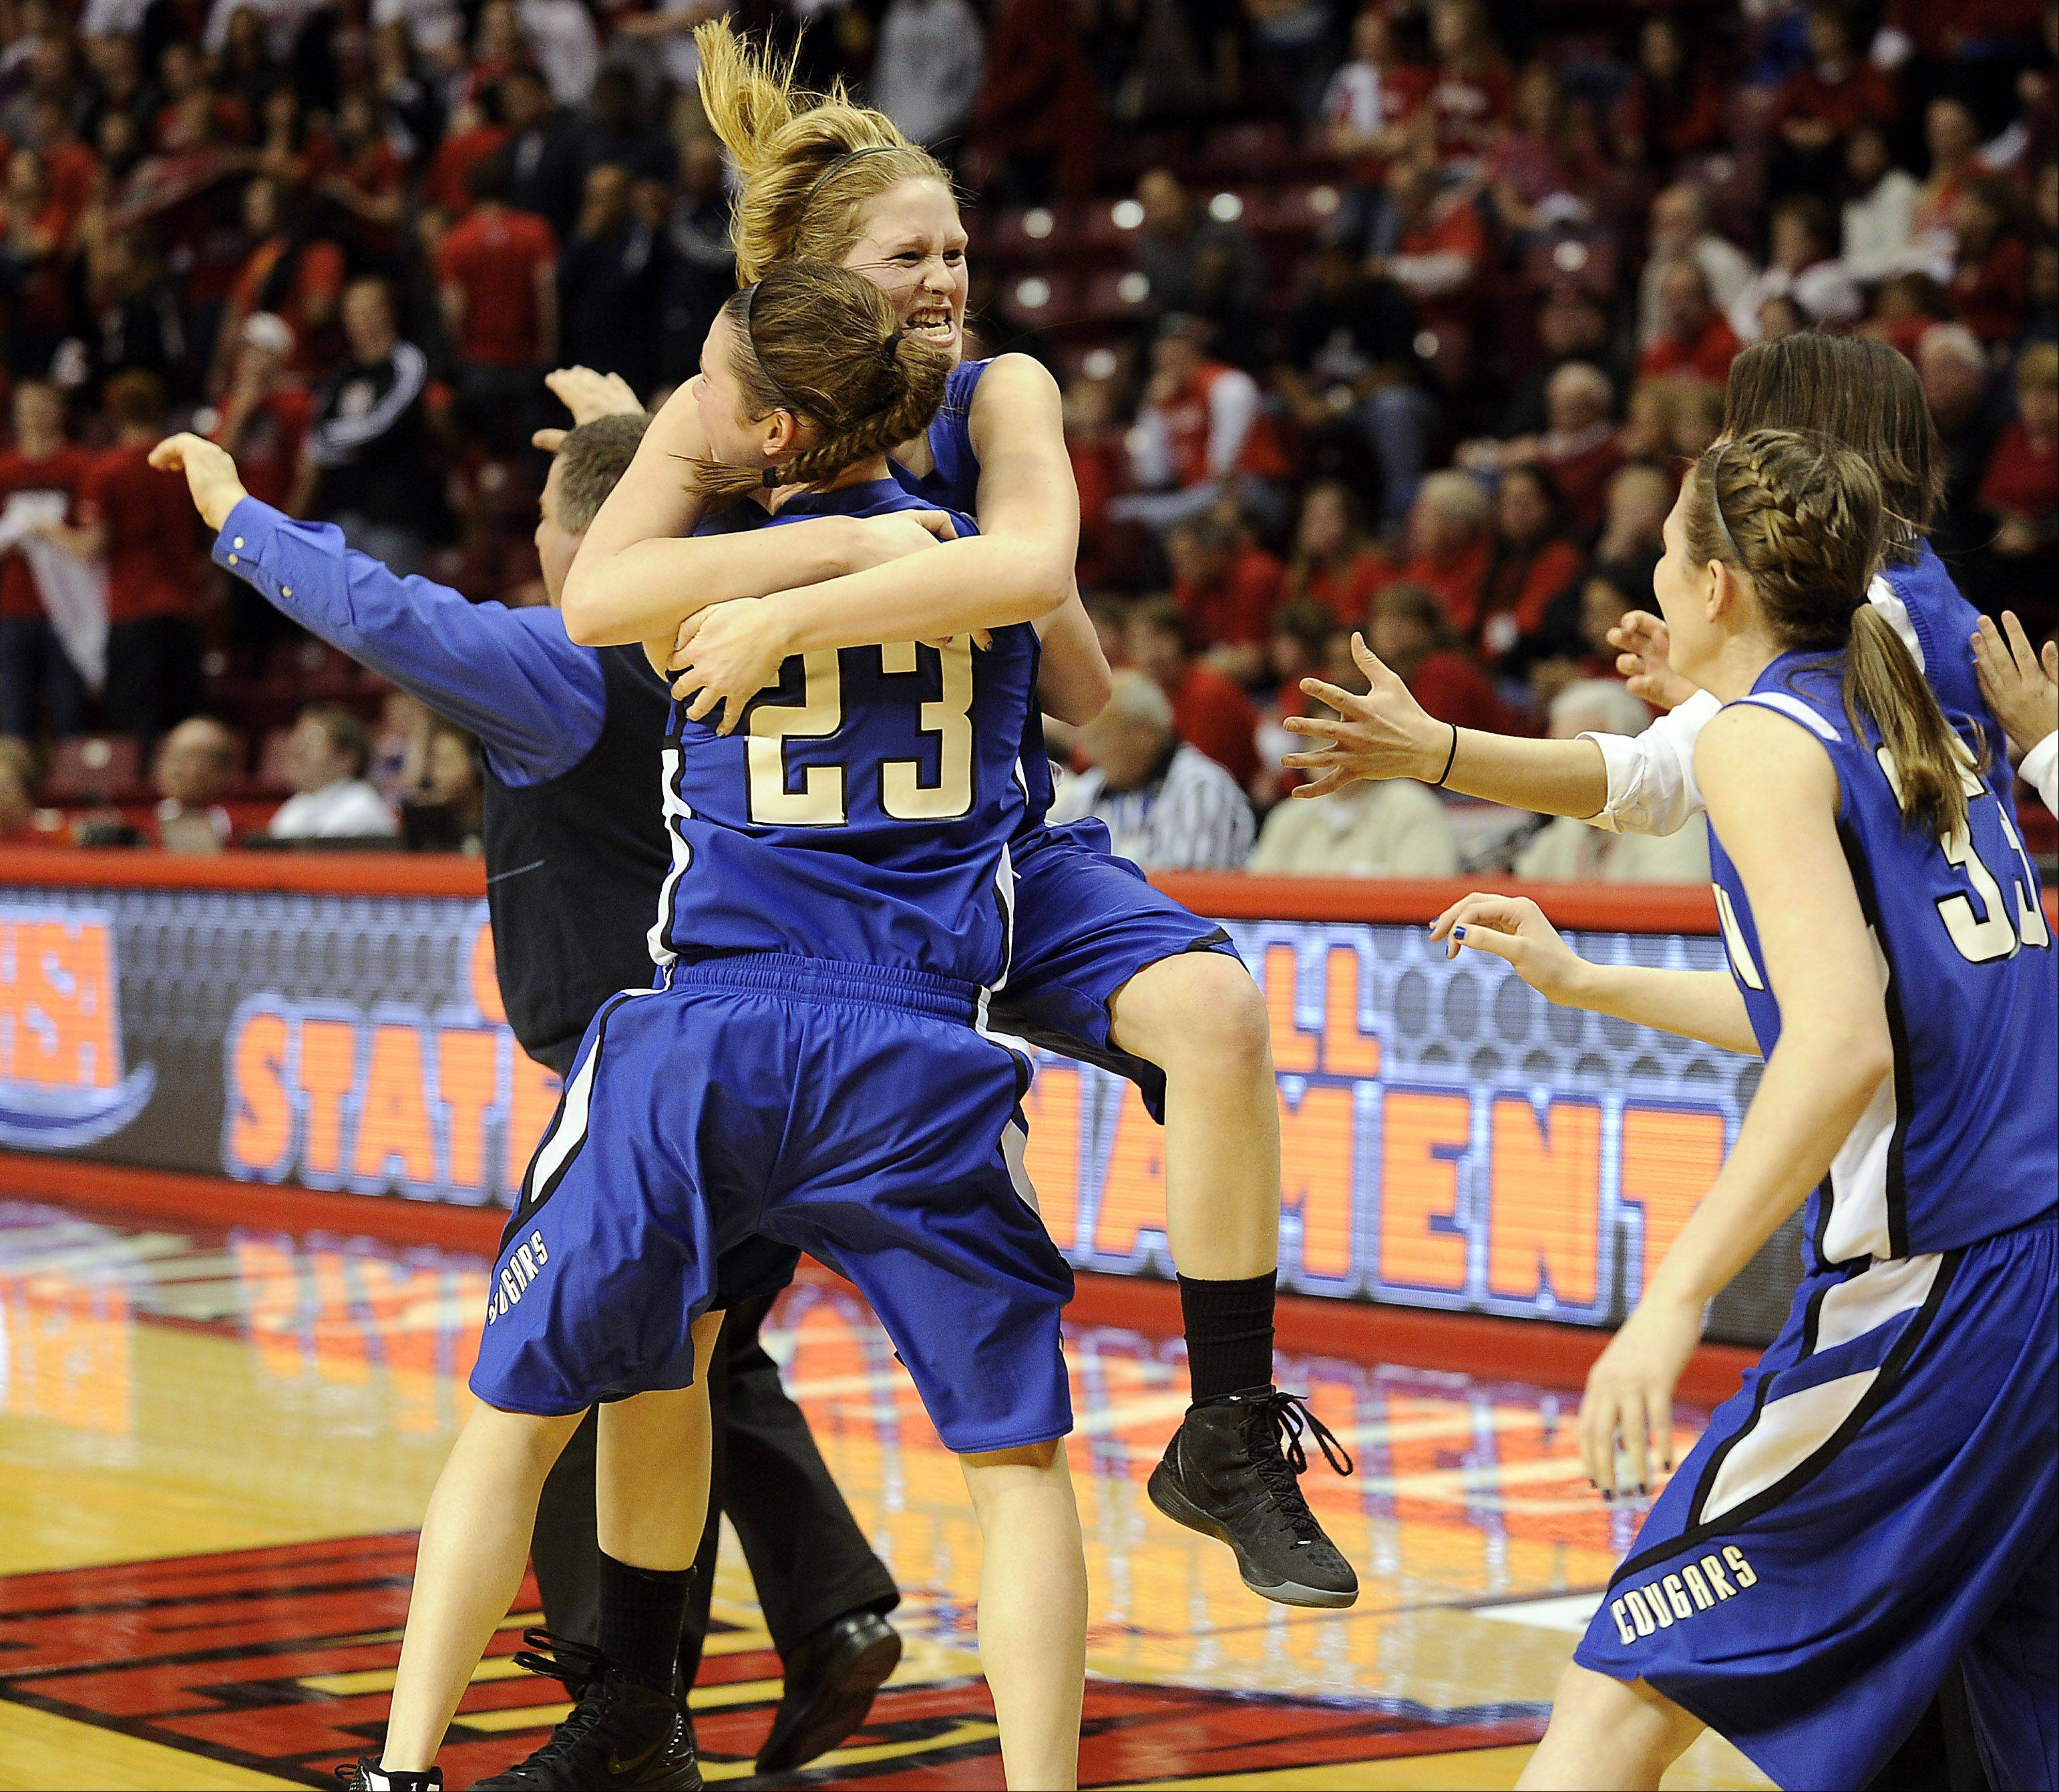 Vernon Hills' Sydney Smith jumps into the arms of teammate Brie Bahlmann in their victory over Springfield in the fourth quarter of play in the 2012 IHSA Class 3A girls basketball tournament in Normal, Illinois on Friday.